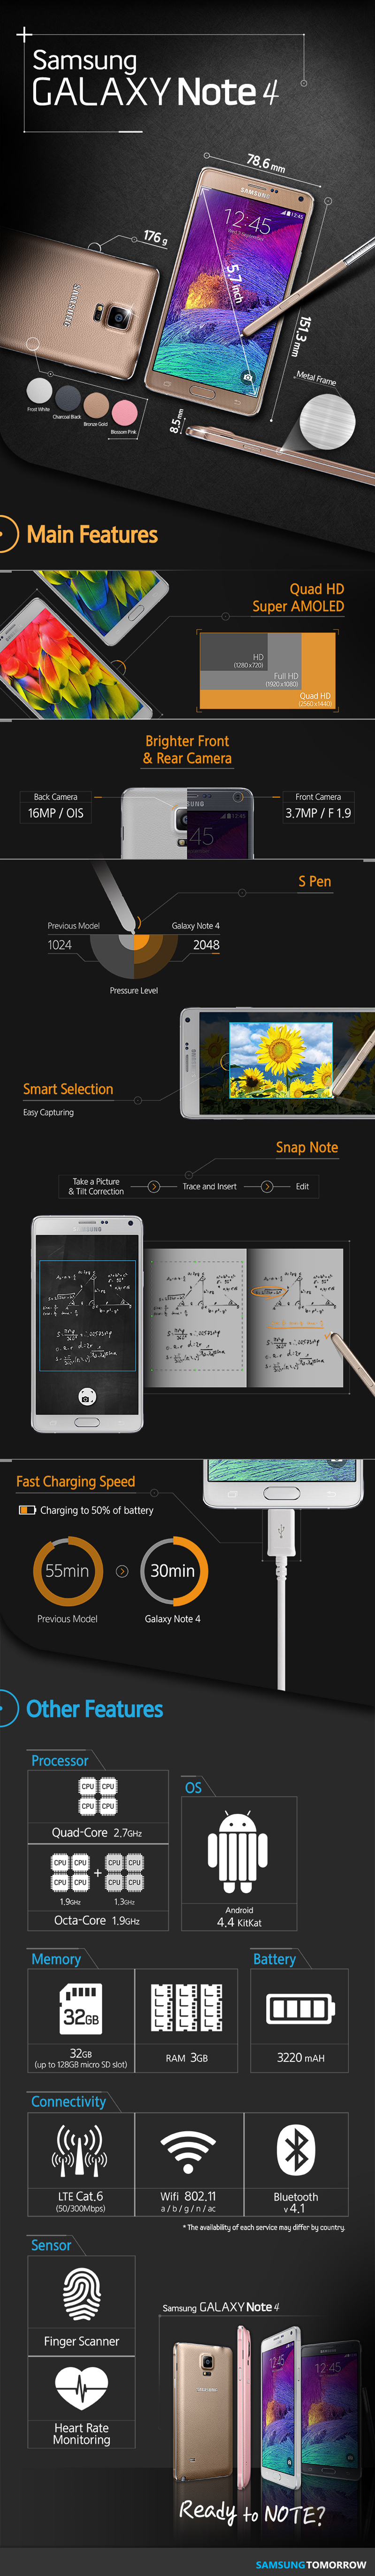 Samsung Note 4 features